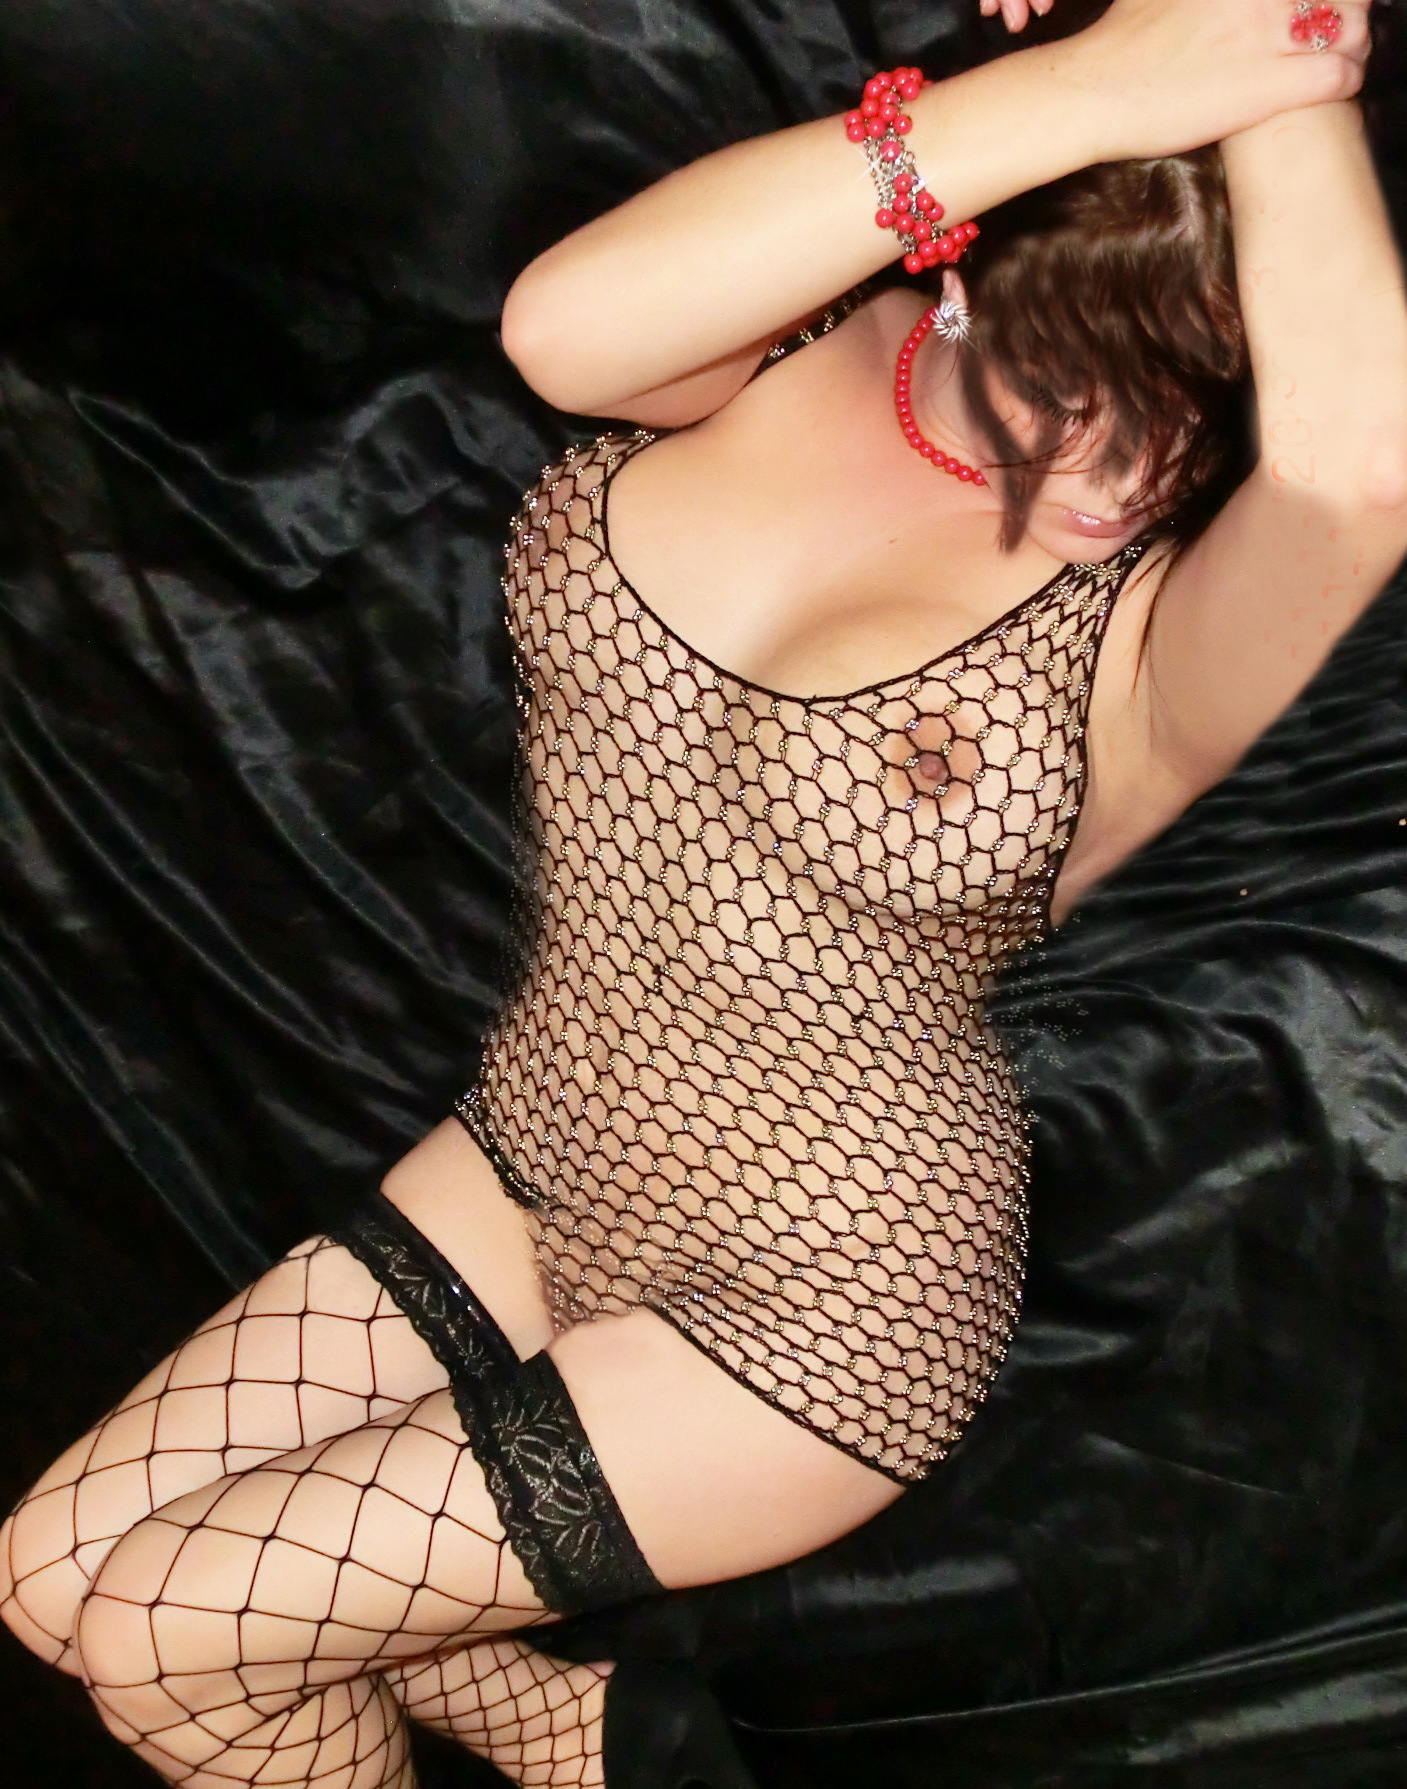 girl in fishnet stockings